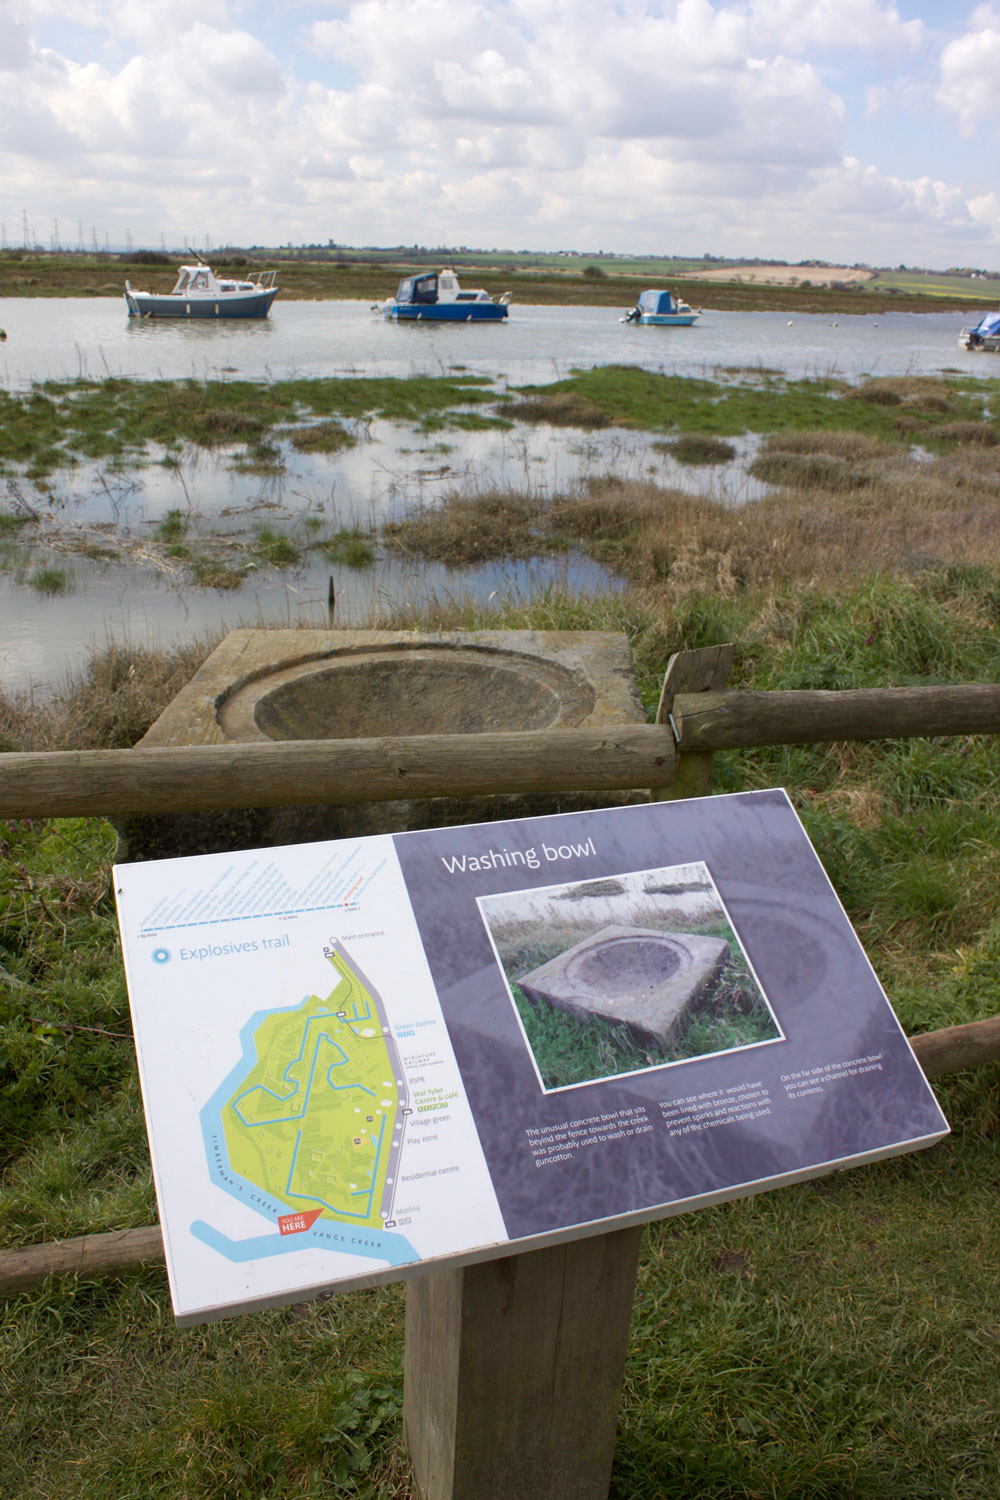 Interpretation panels mark the historic trails.